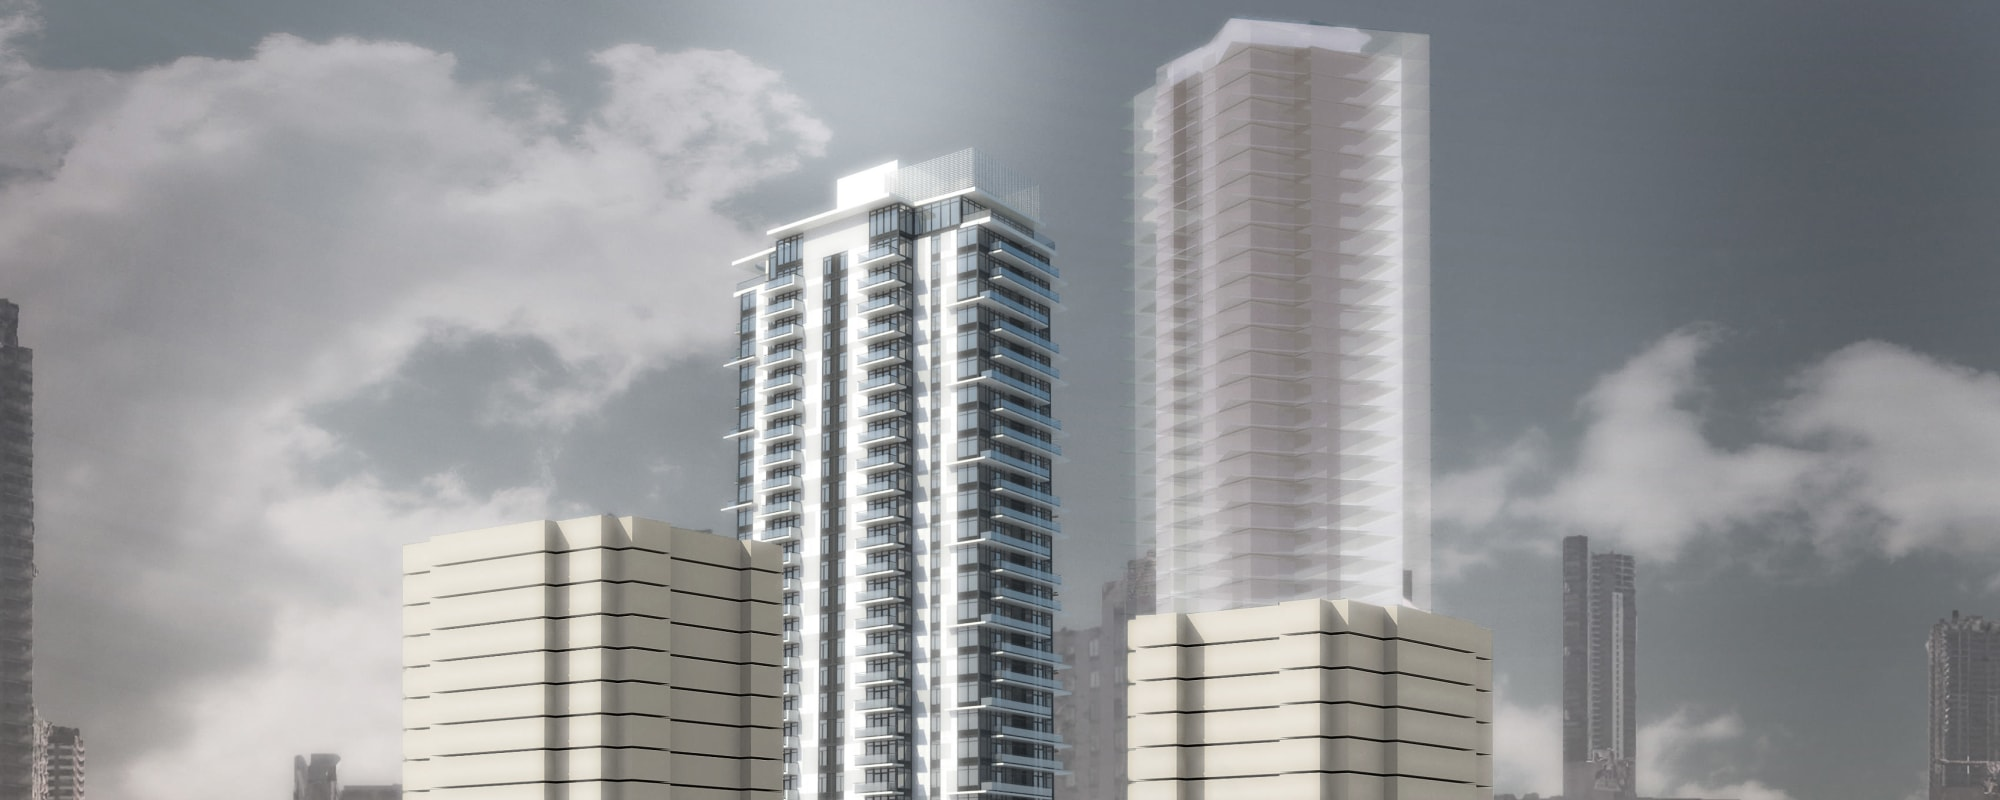 Proposed development in Burnaby, British Columbia at Parkview Development